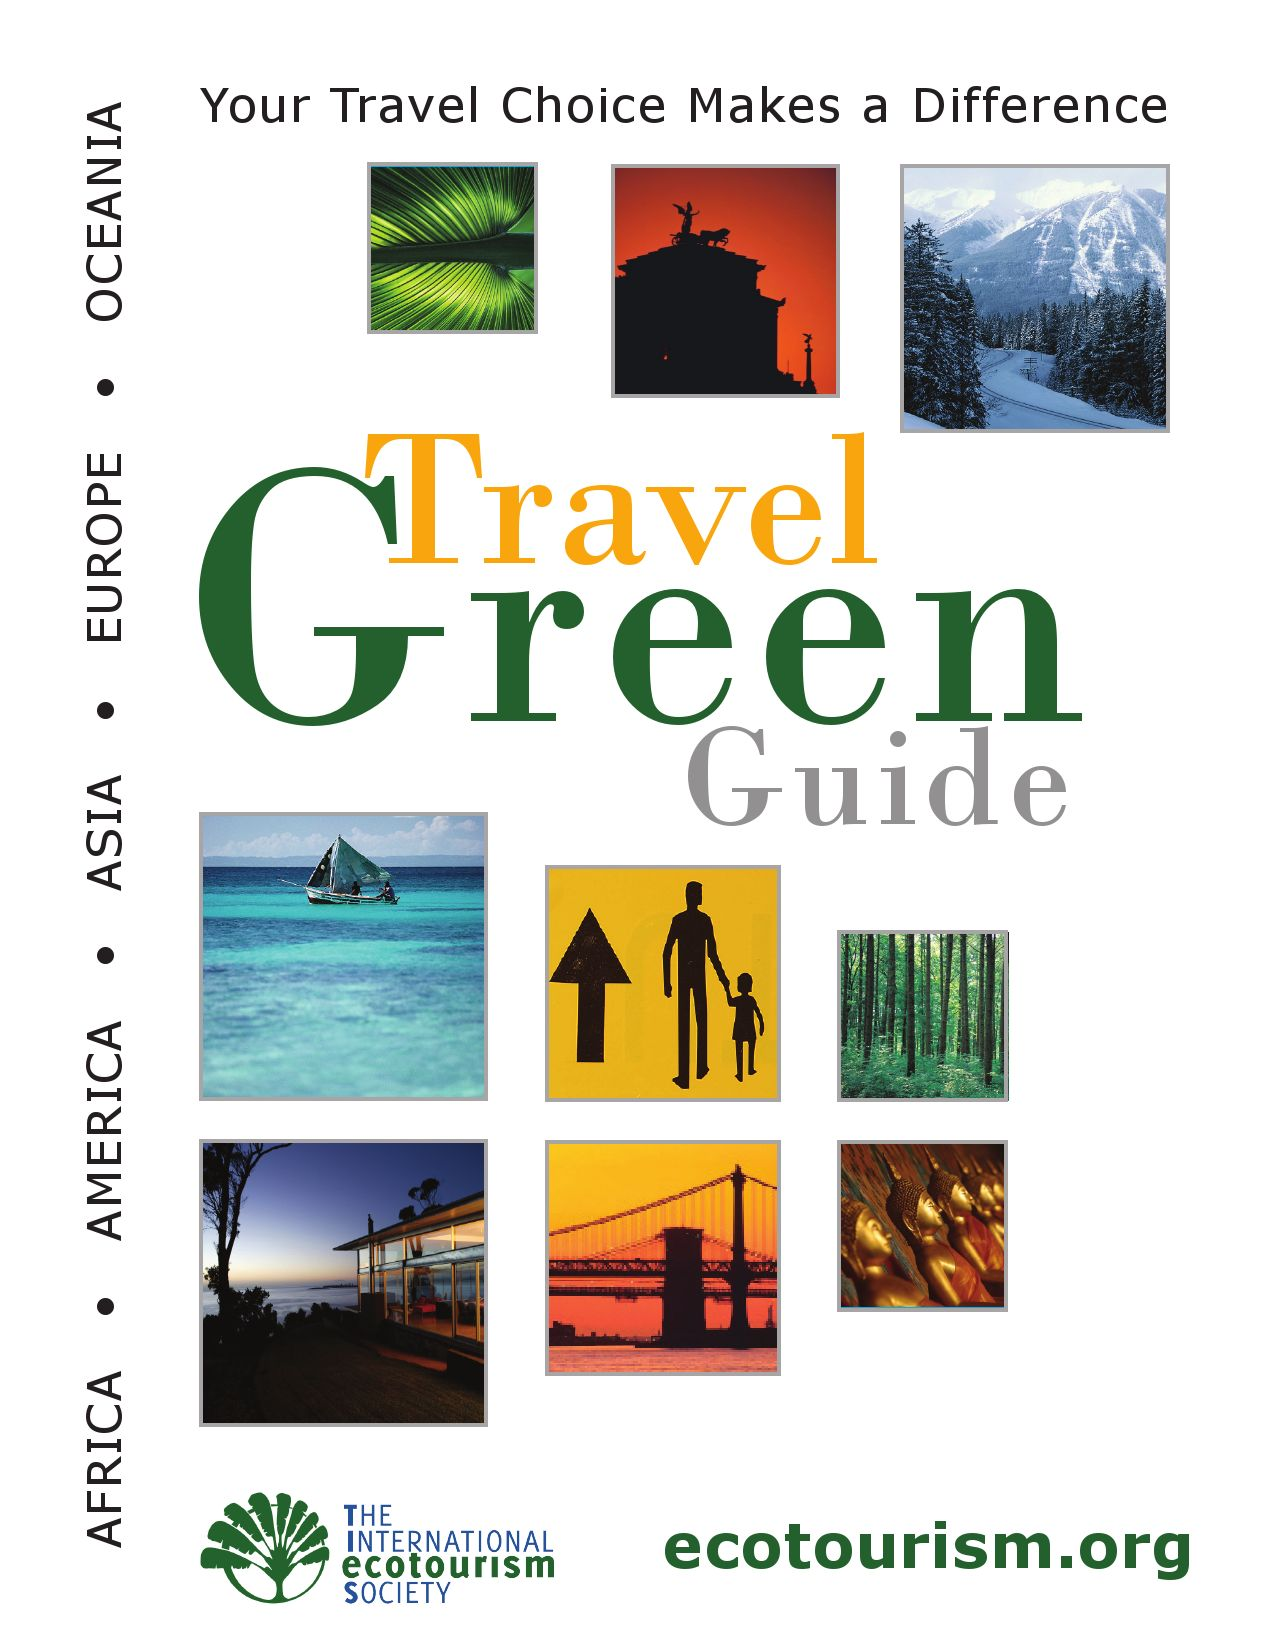 TIES Travel Green Guide 2009 By The International Ecotourism Society   Issuu